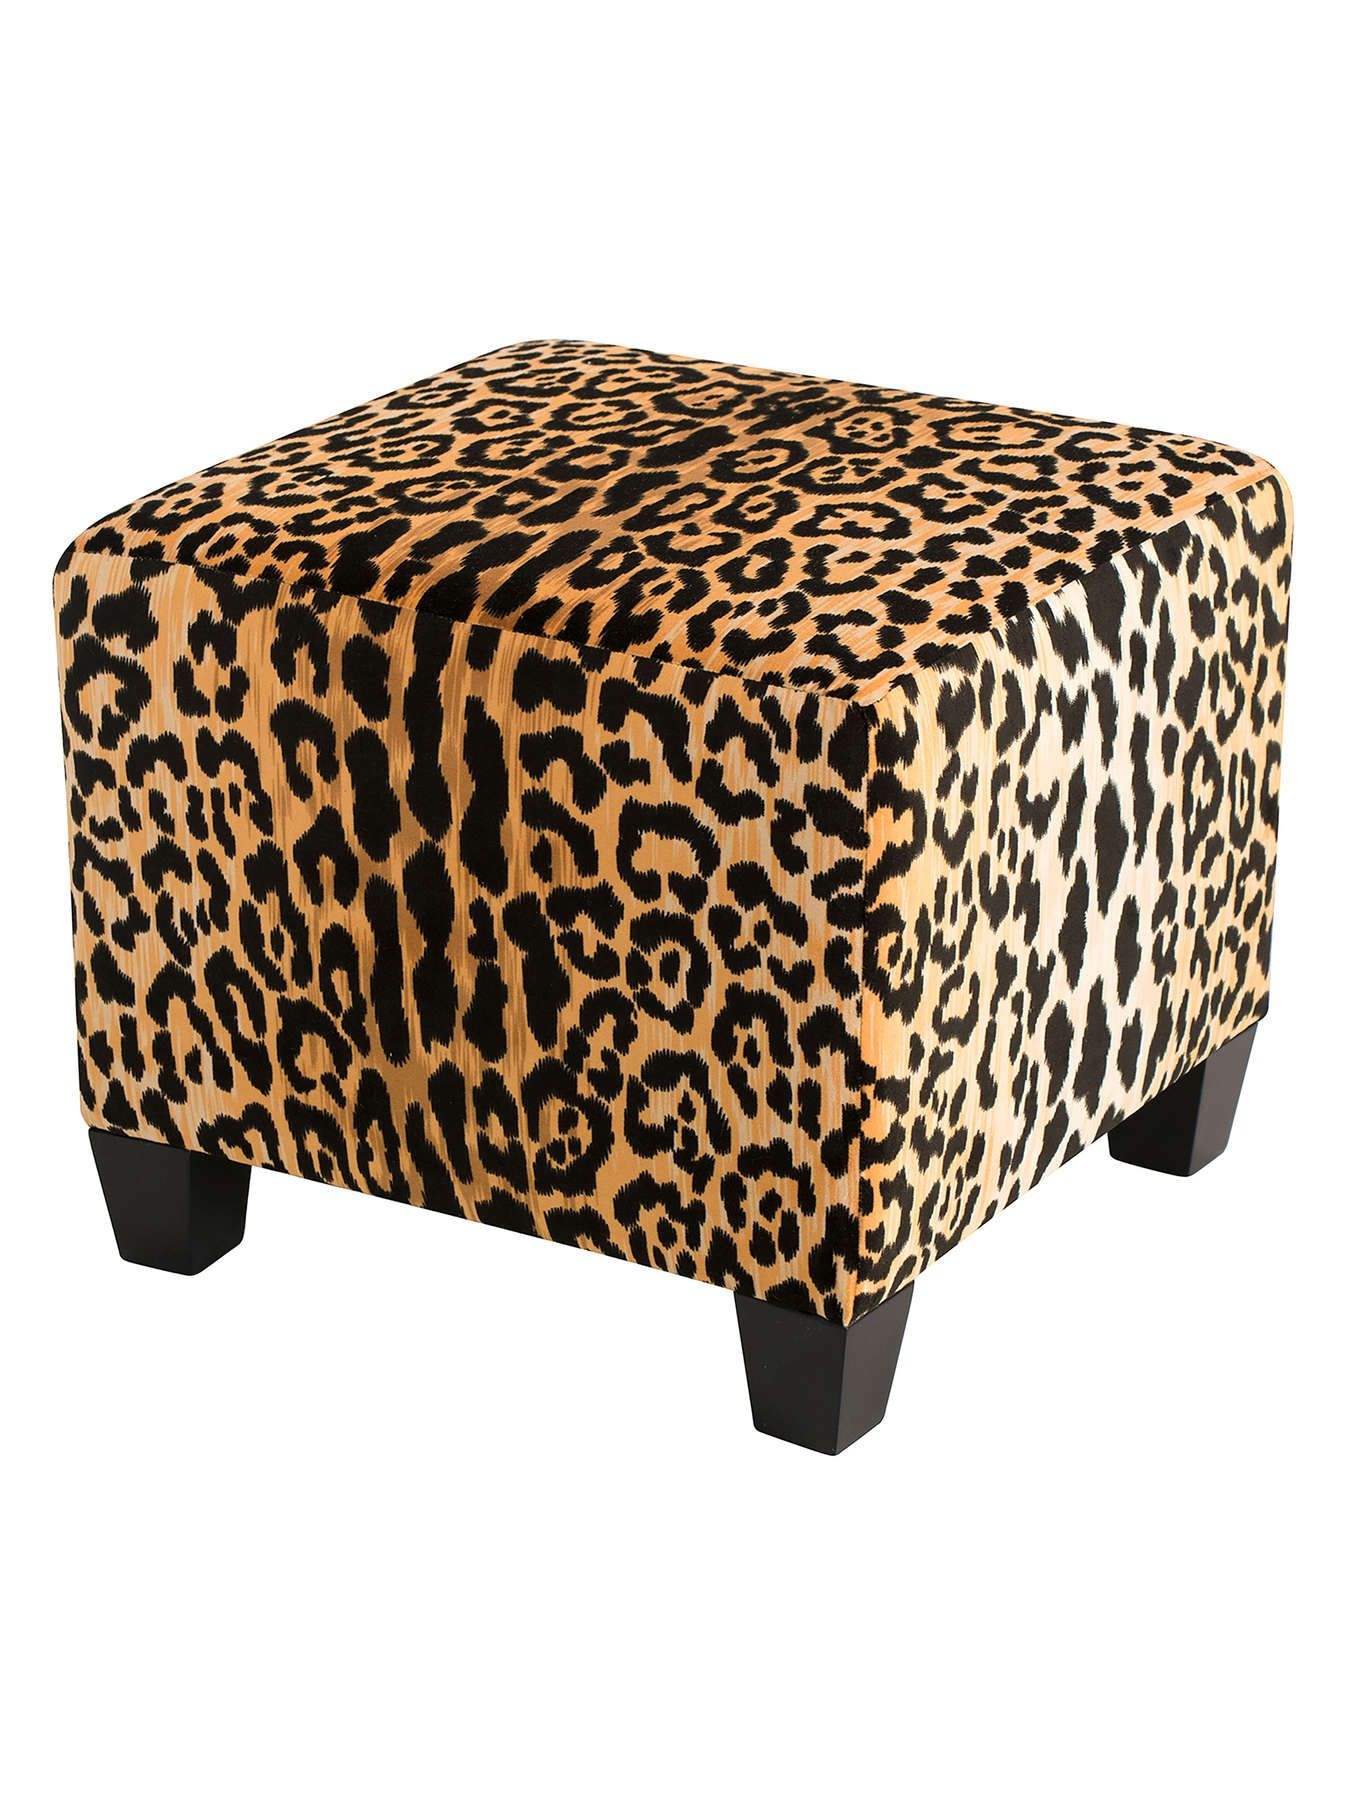 Surprising Leopard Print Square Ottoman In 2019 Animal Print Alphanode Cool Chair Designs And Ideas Alphanodeonline